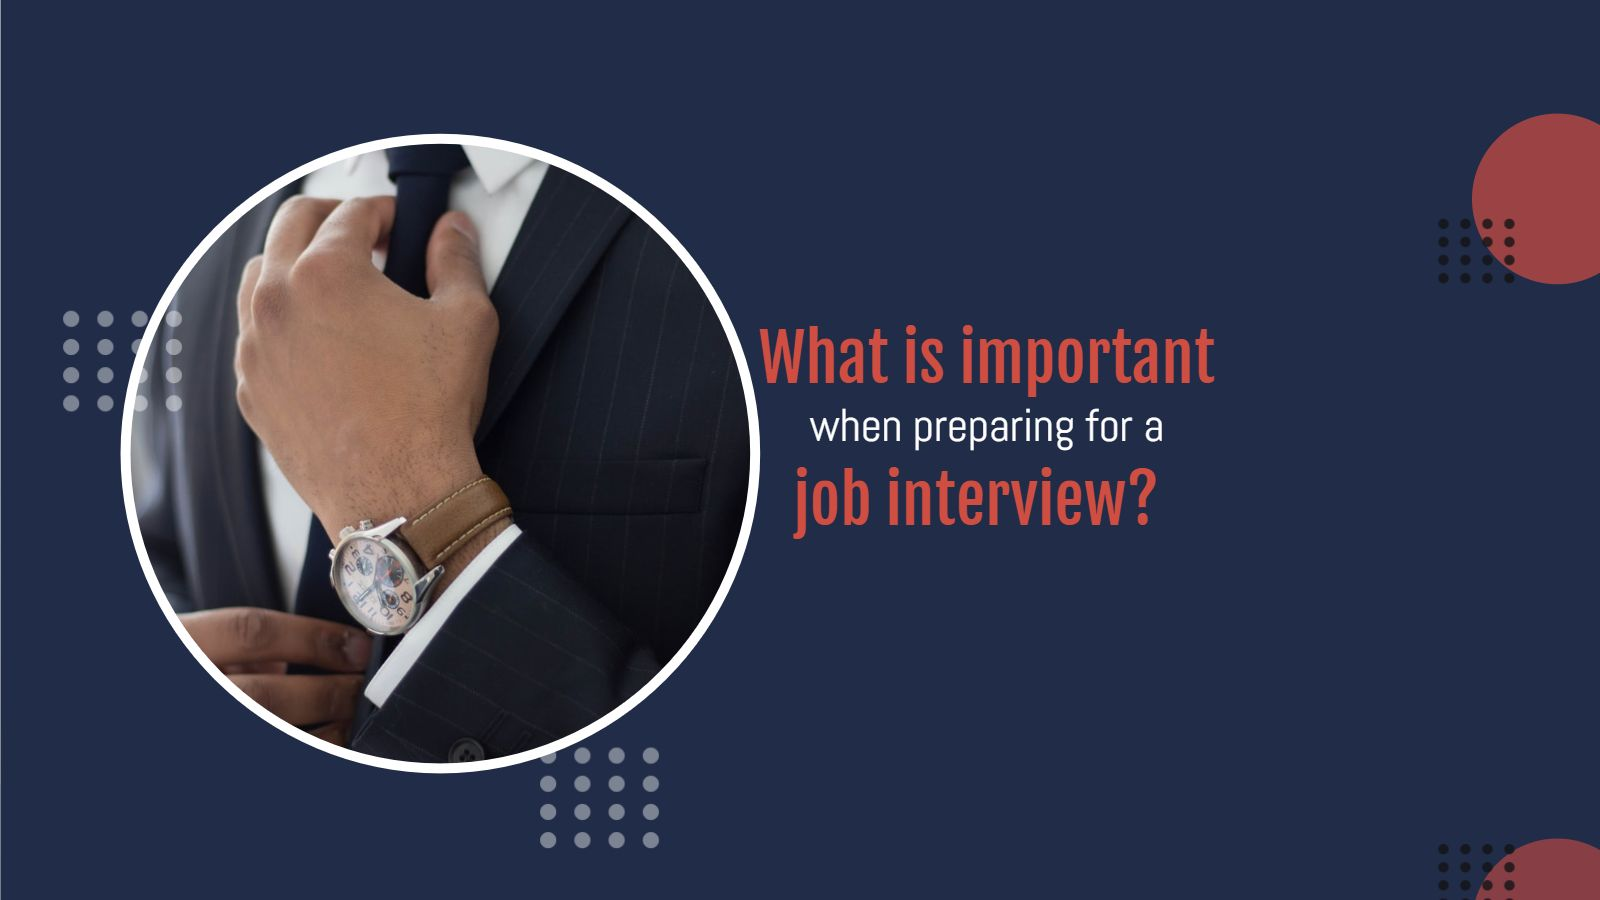 What is important when preparing for a job interview?